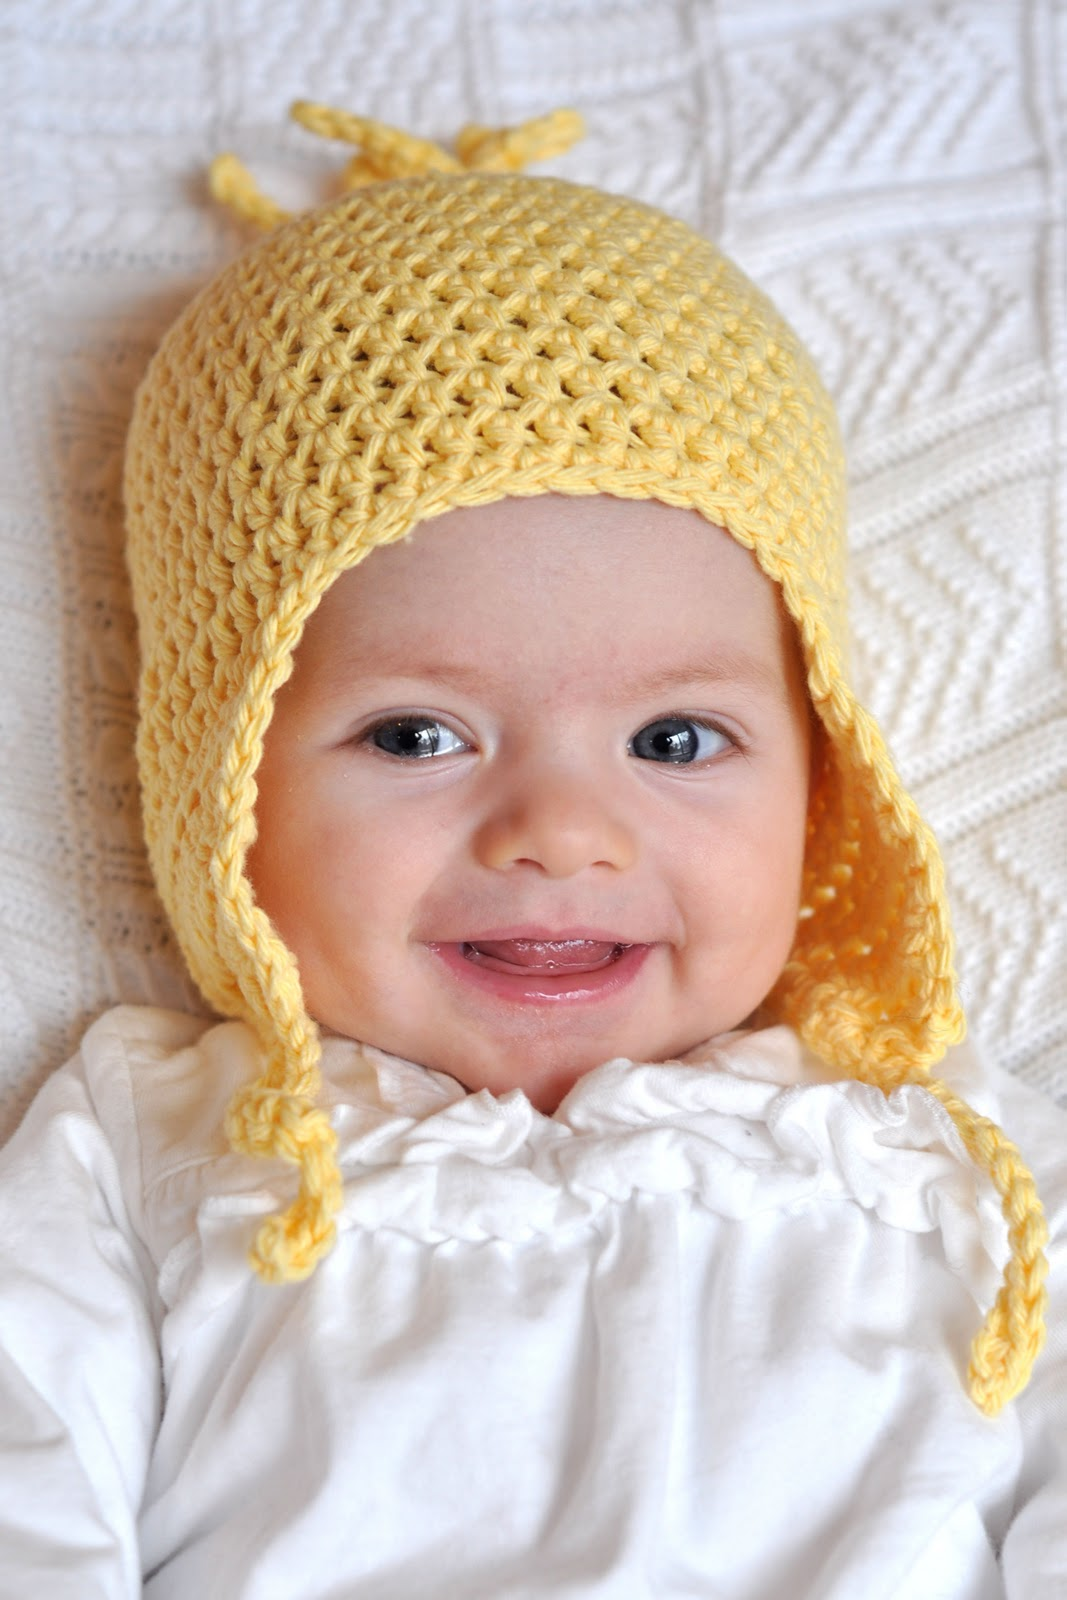 Free Crochet Pattern Toddler Earflap Hat : Aesthetic Nest: Crochet: Flippy Floppy Earflap Hat for ...